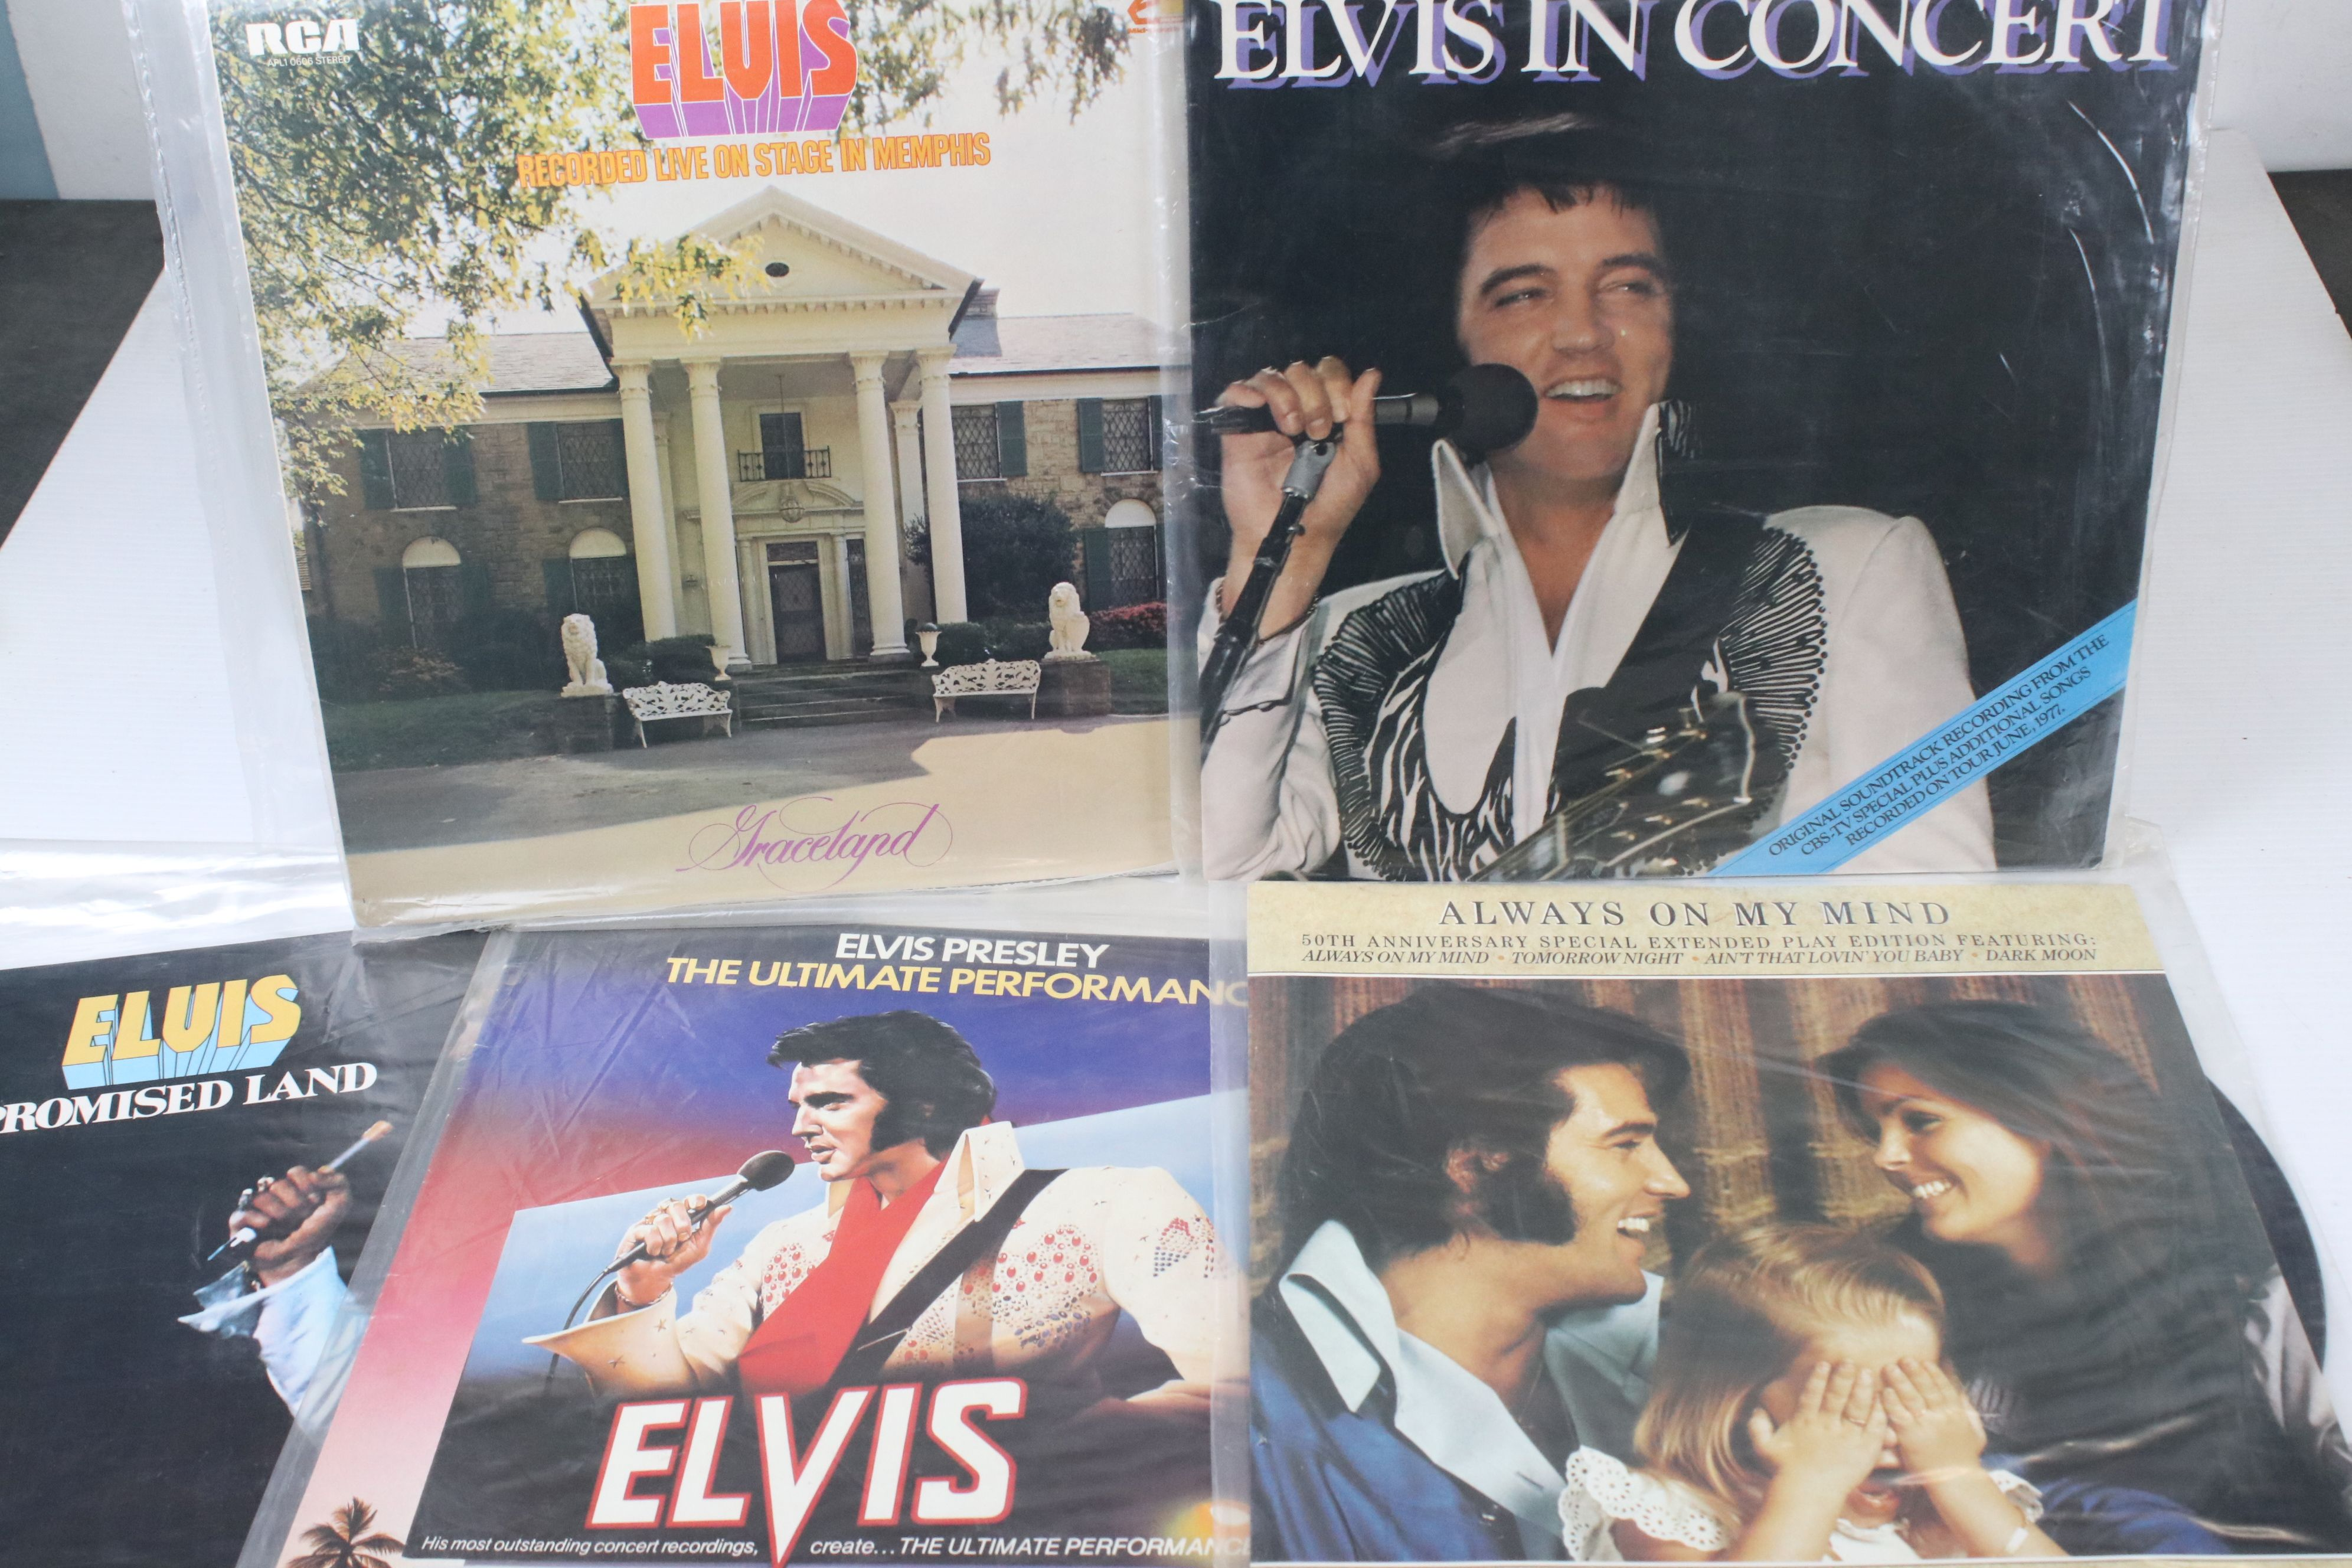 Vinyl - Collection of approx 50 Elvis LP's spanning his career. Condition varies but overall VG+ - Image 2 of 7